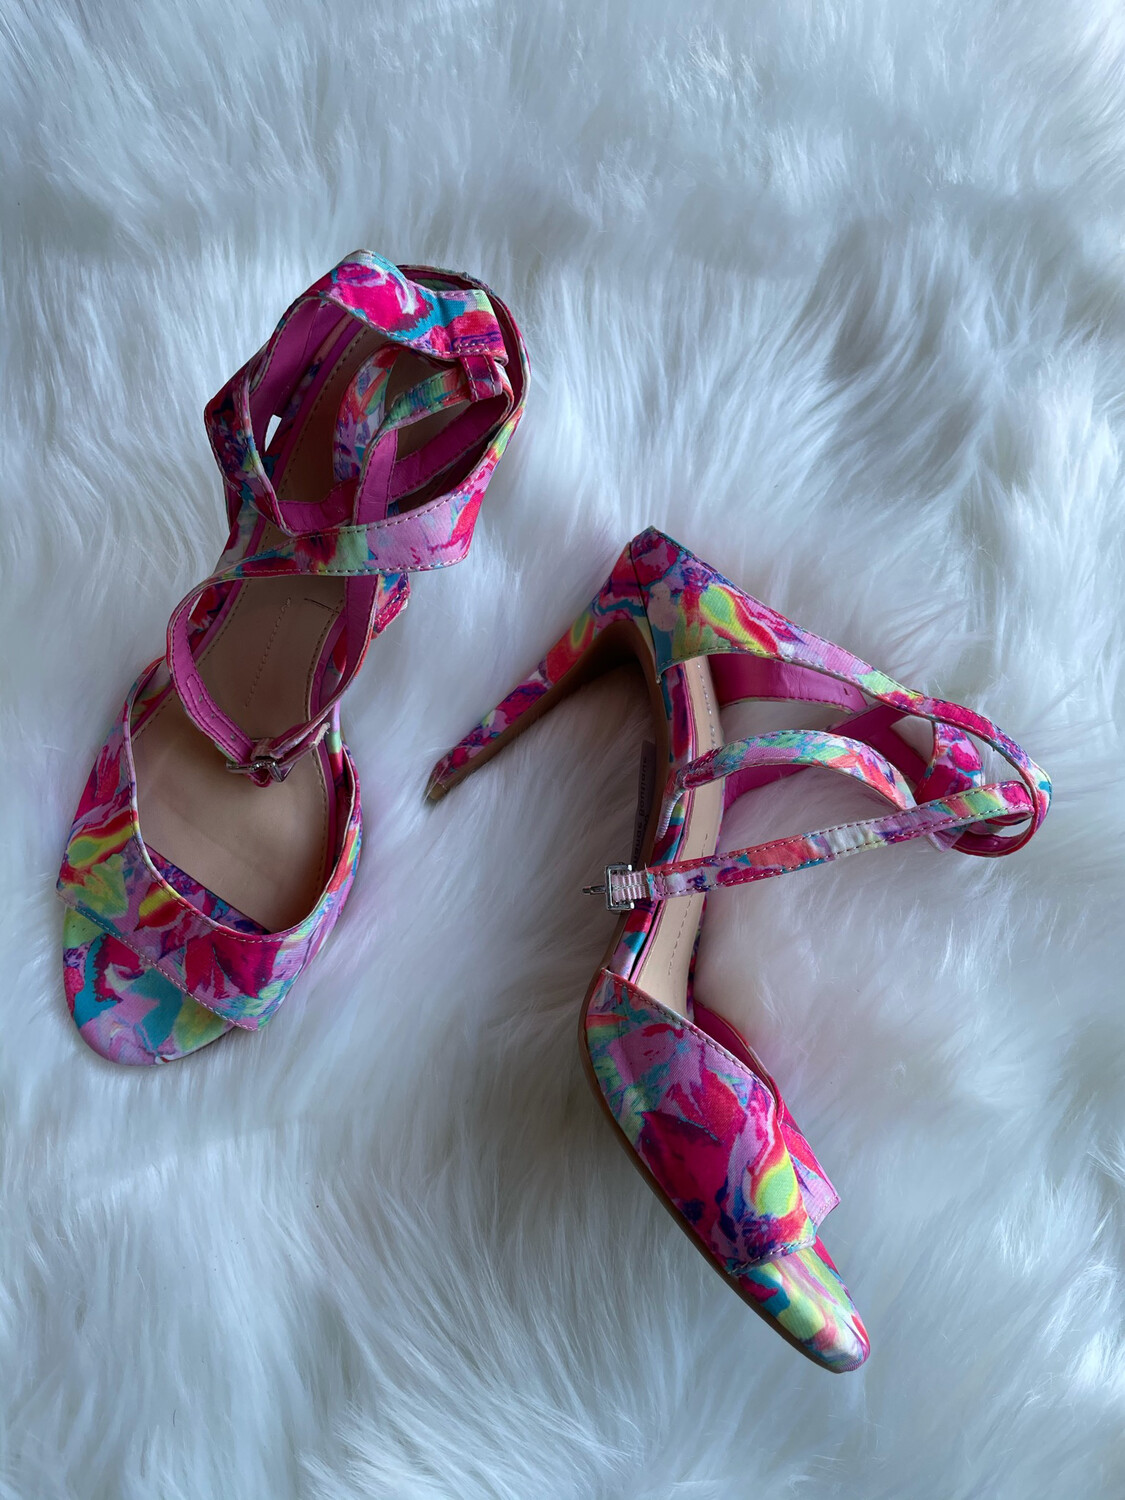 Gianni Bini Colorful Patterned Ankle Strap Heels - Size 7